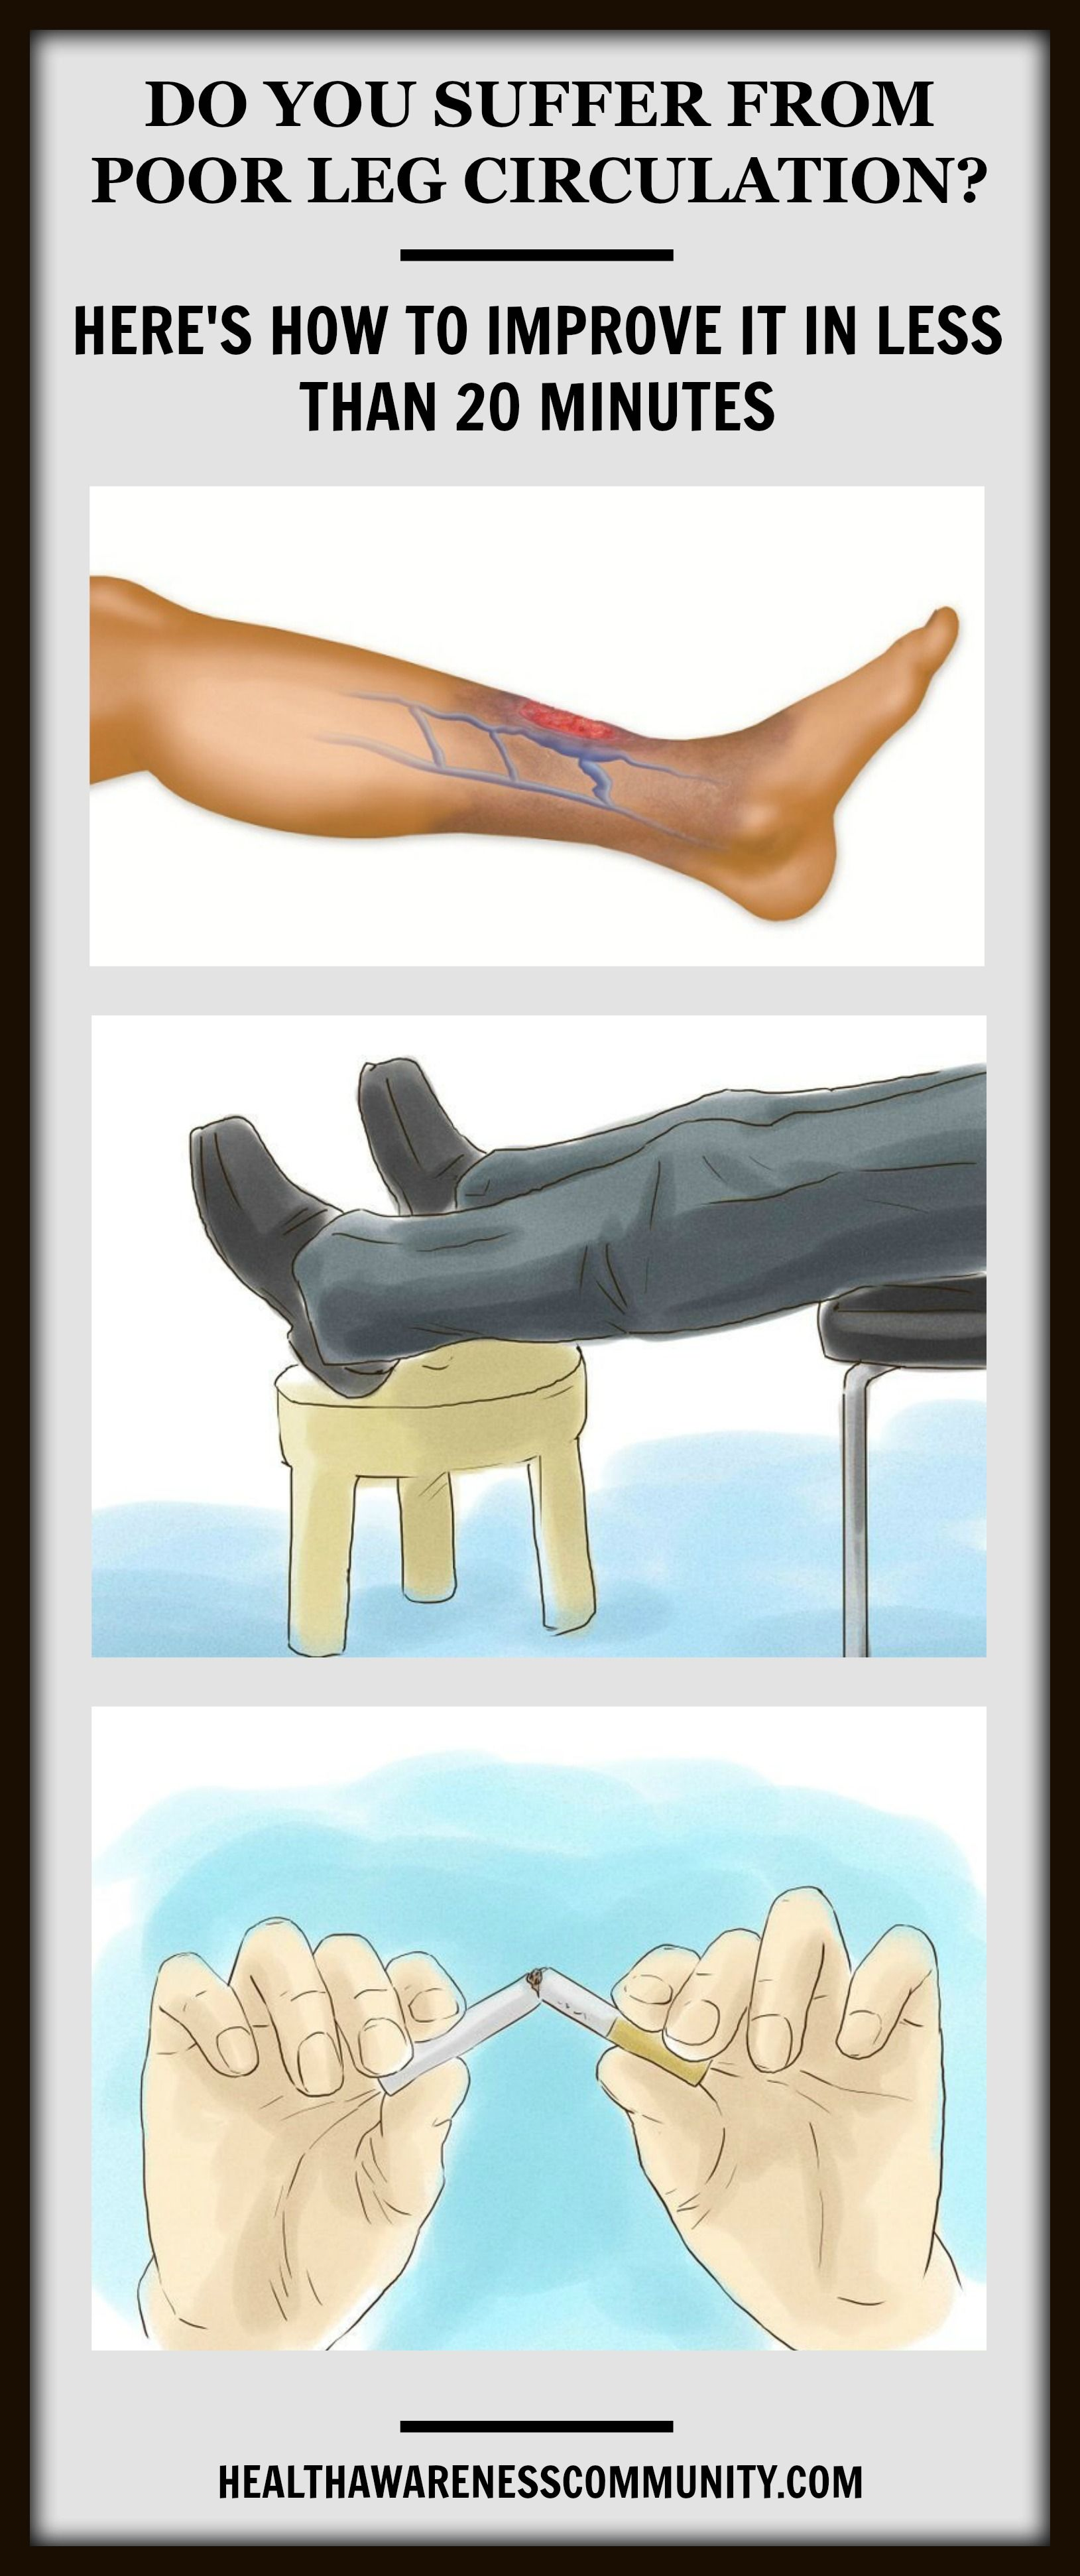 Do you suffer from poor leg circulation heres how to